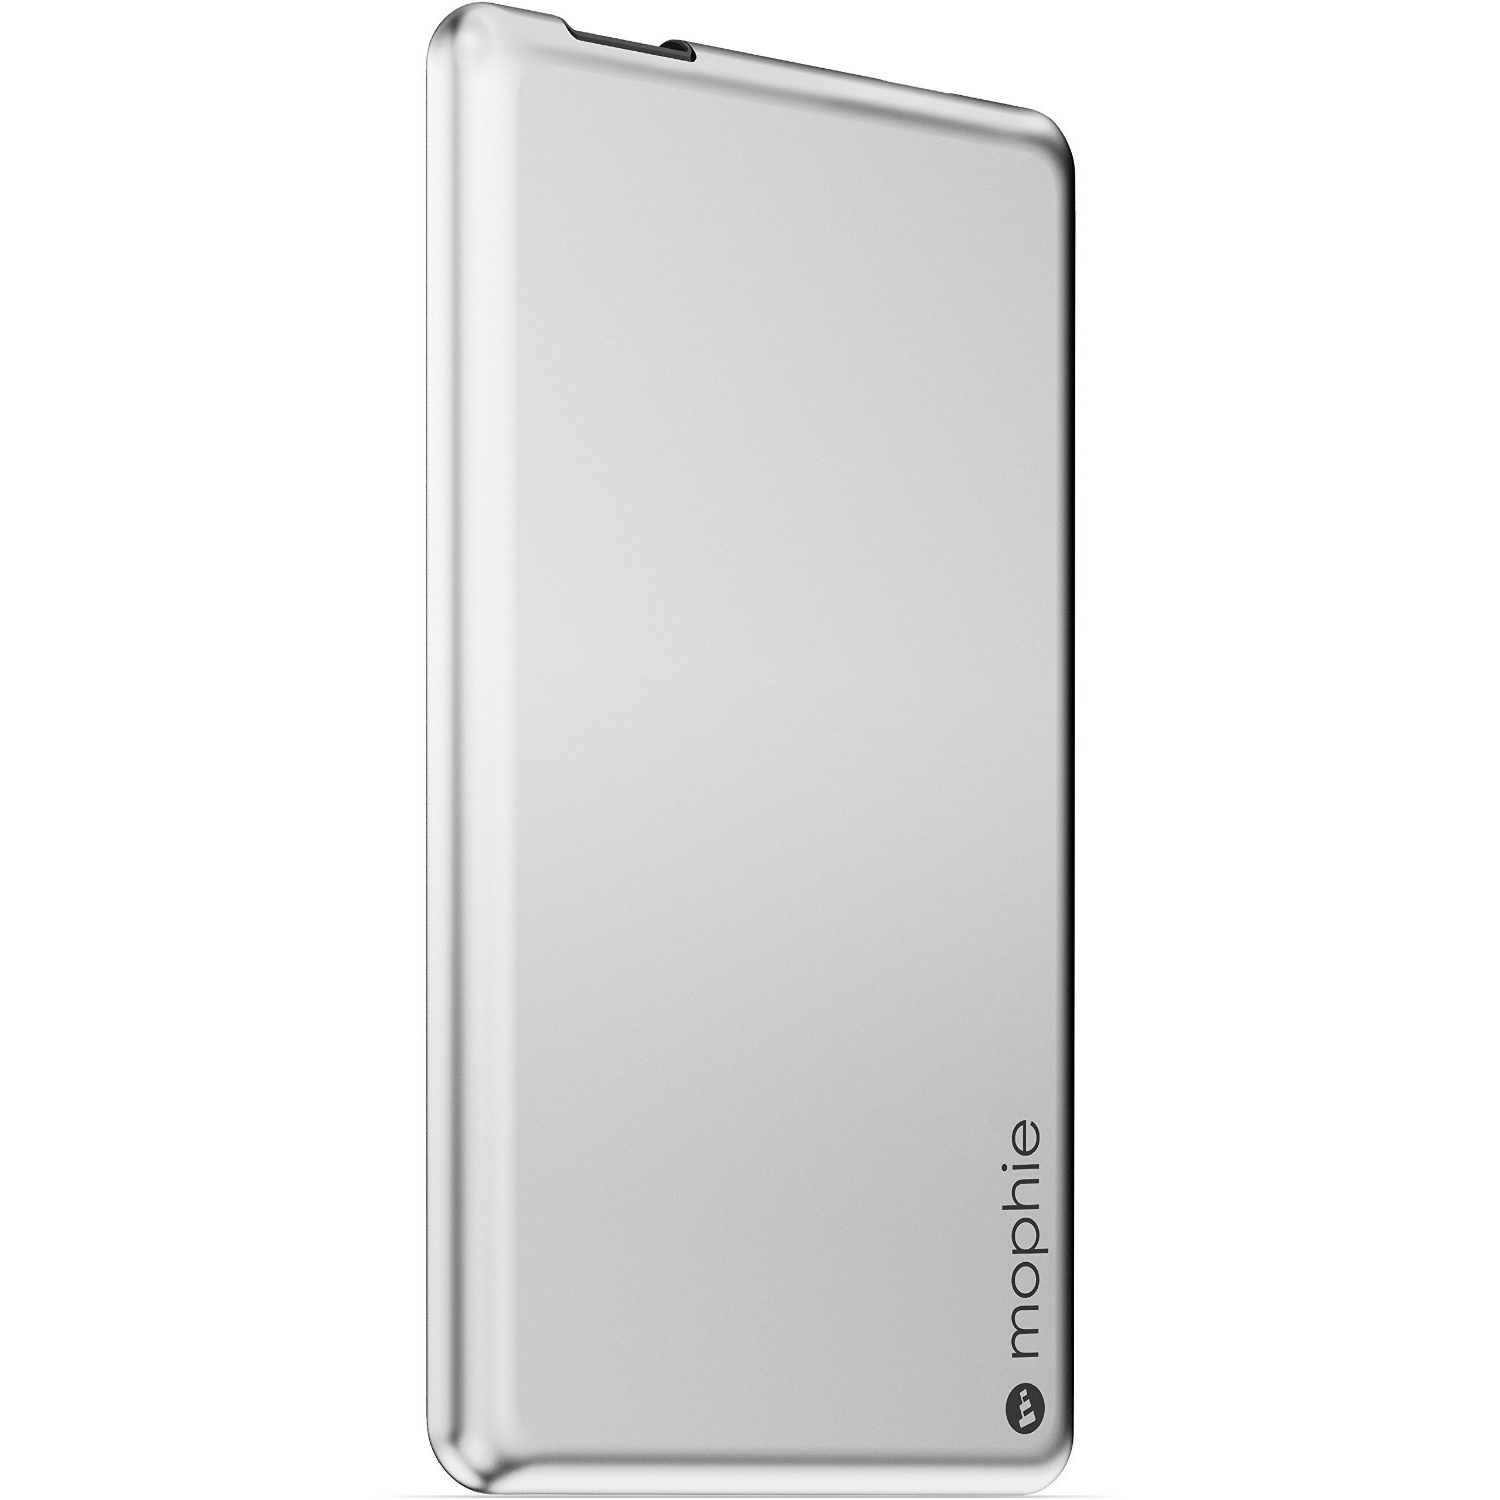 Mophie Powerstation Powerbank Charger 2X for Smartphones and Tablets (4,000 mAh) [Aluminum]